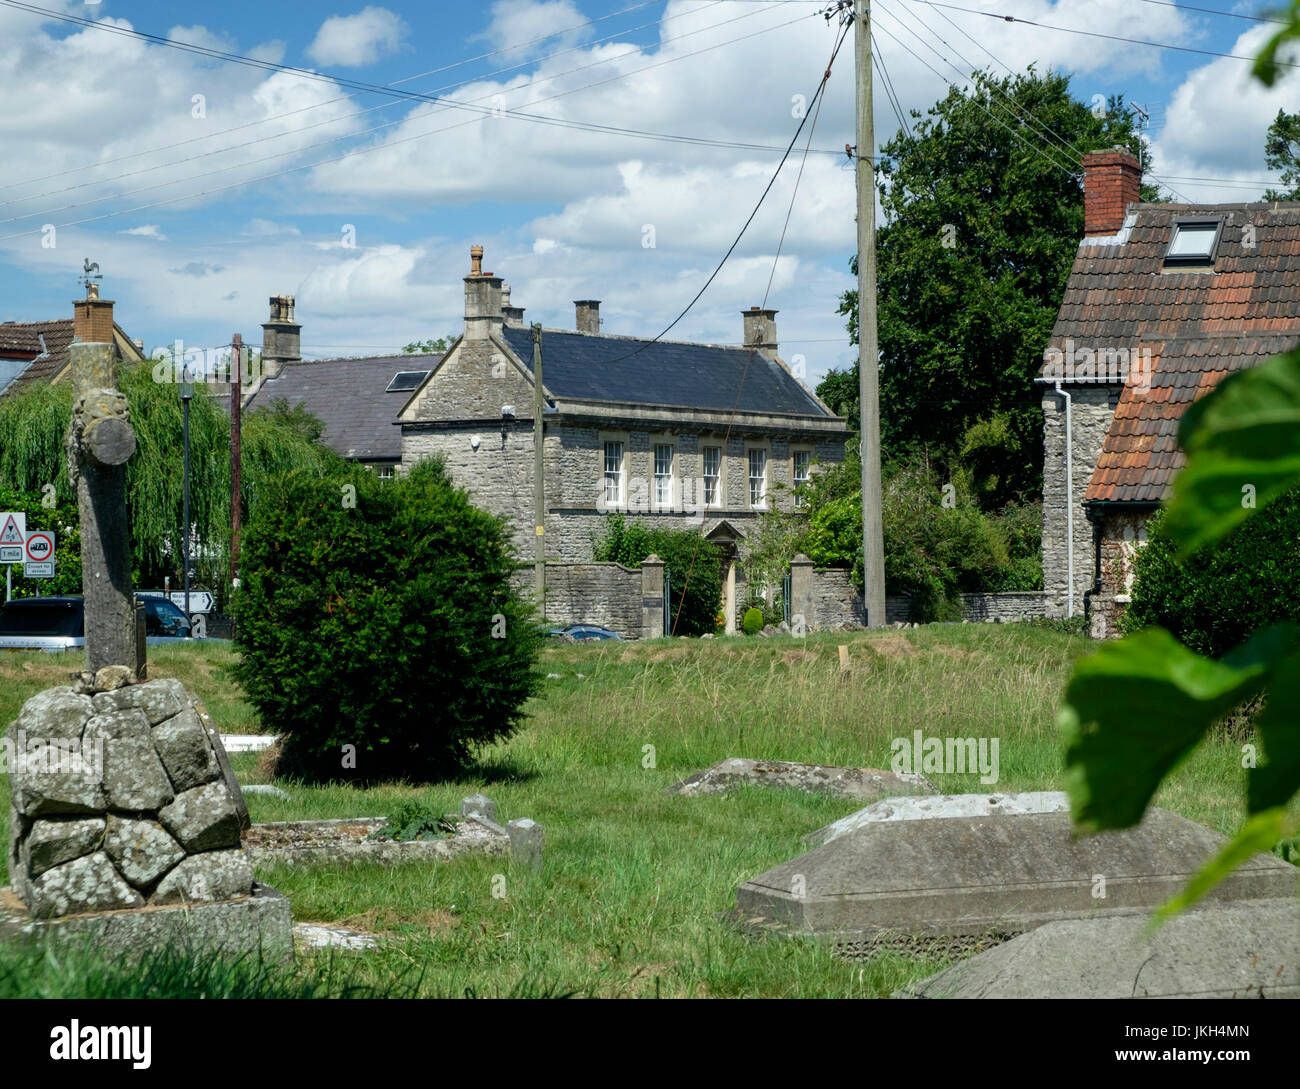 eaa68694 Pucklechurch a smal village in south Gloucestershire England UK - Stock  Image